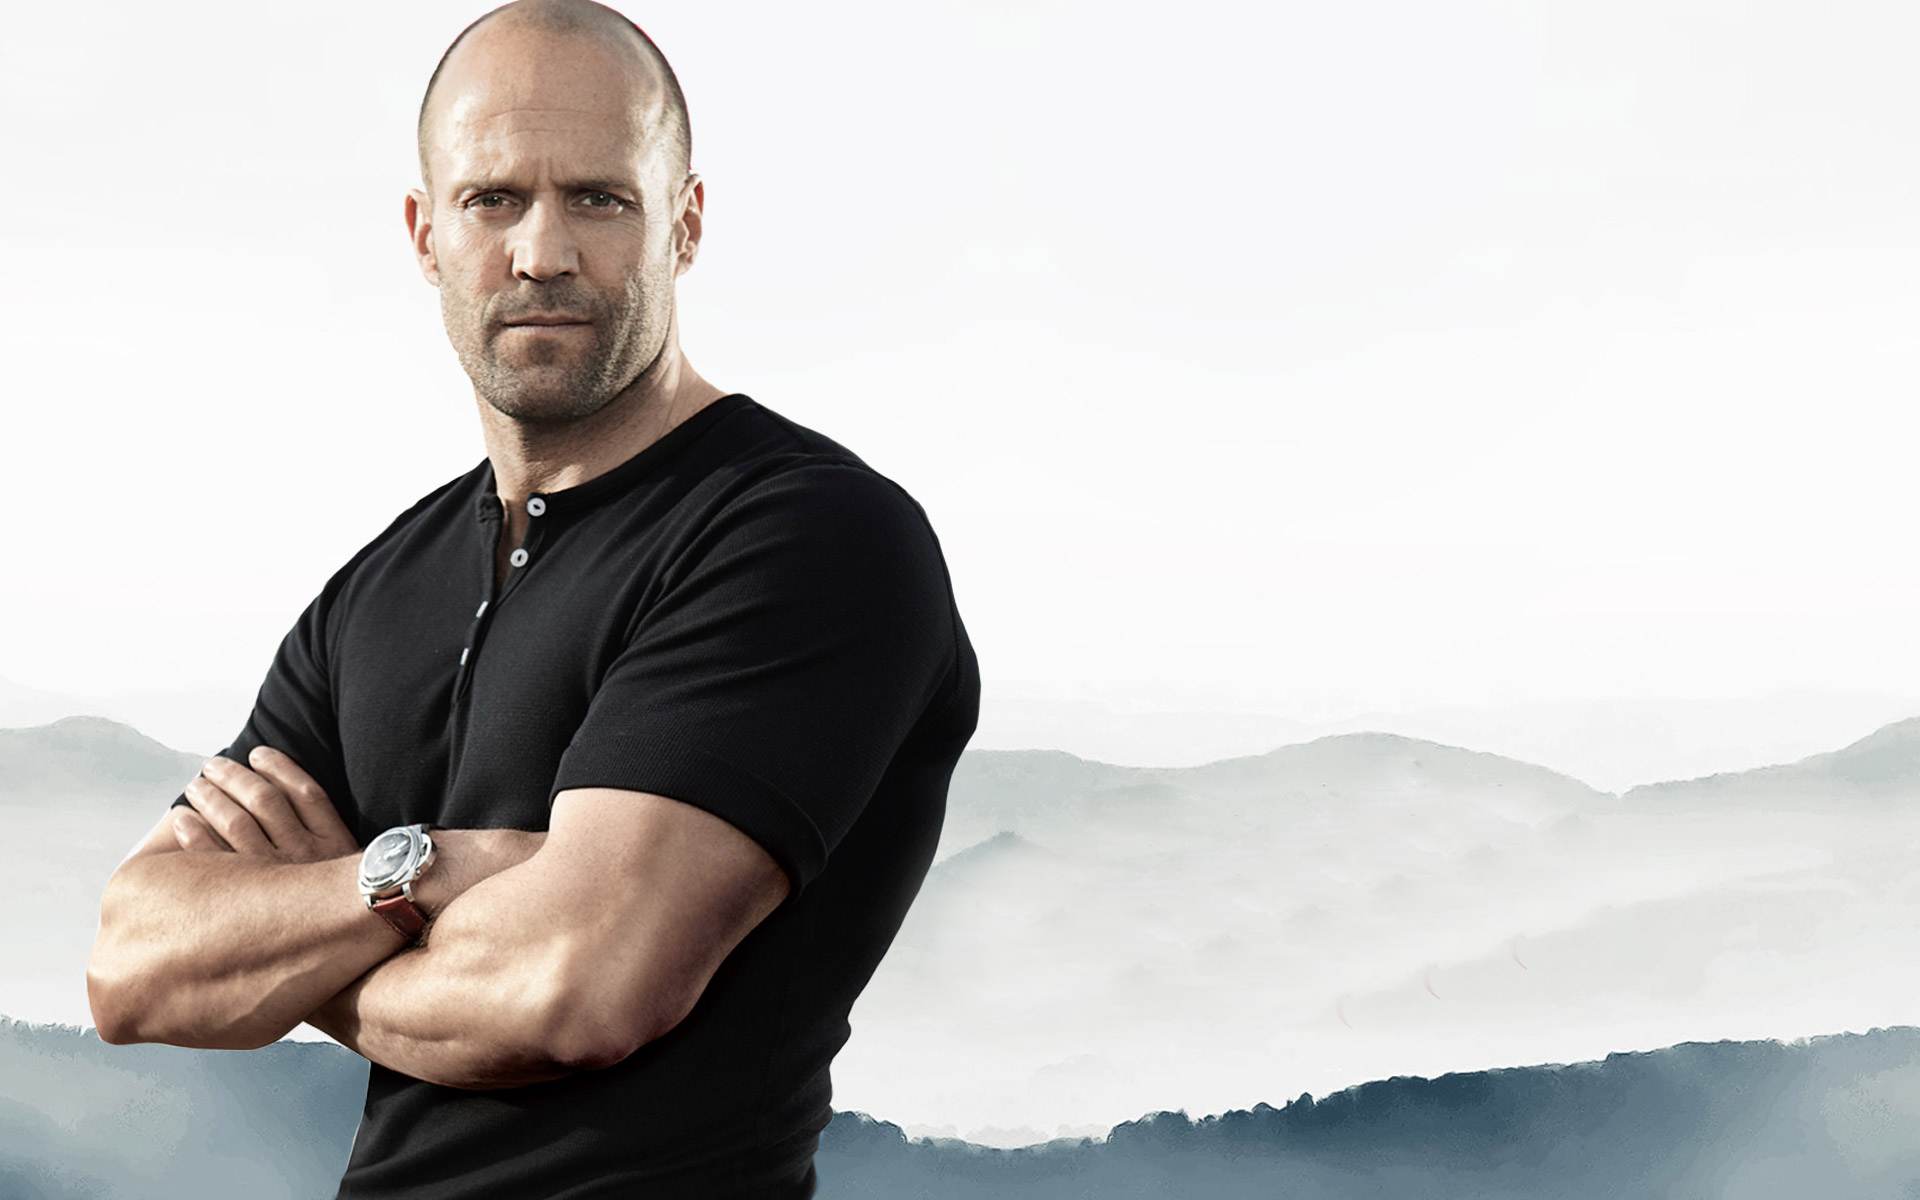 Jason Statham Wallpapers High Resolution and Quality Download 1920x1200